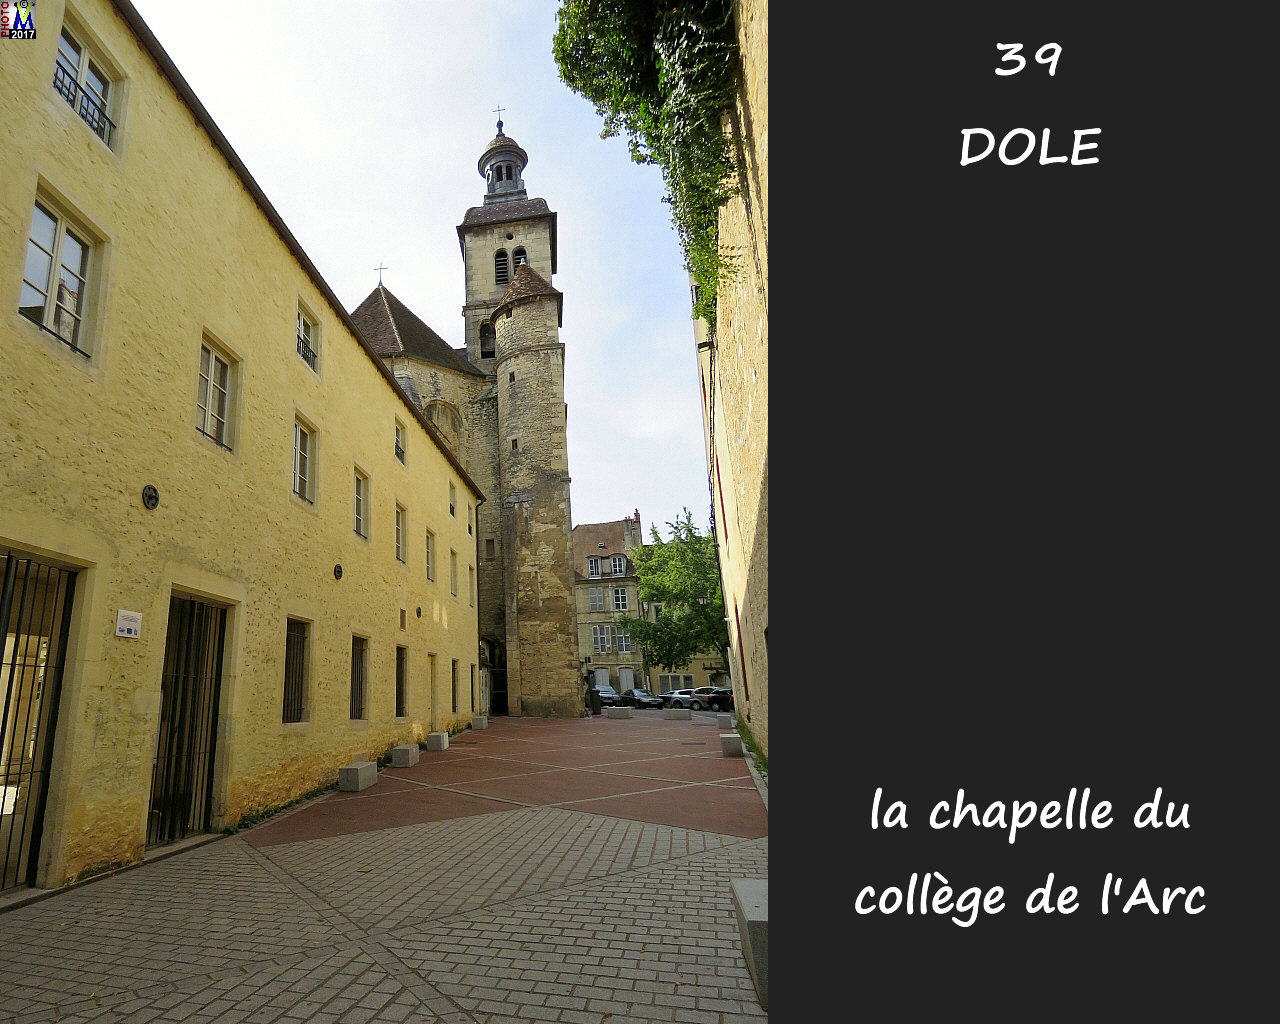 39DOLE_chapelle-Arc_100.jpg